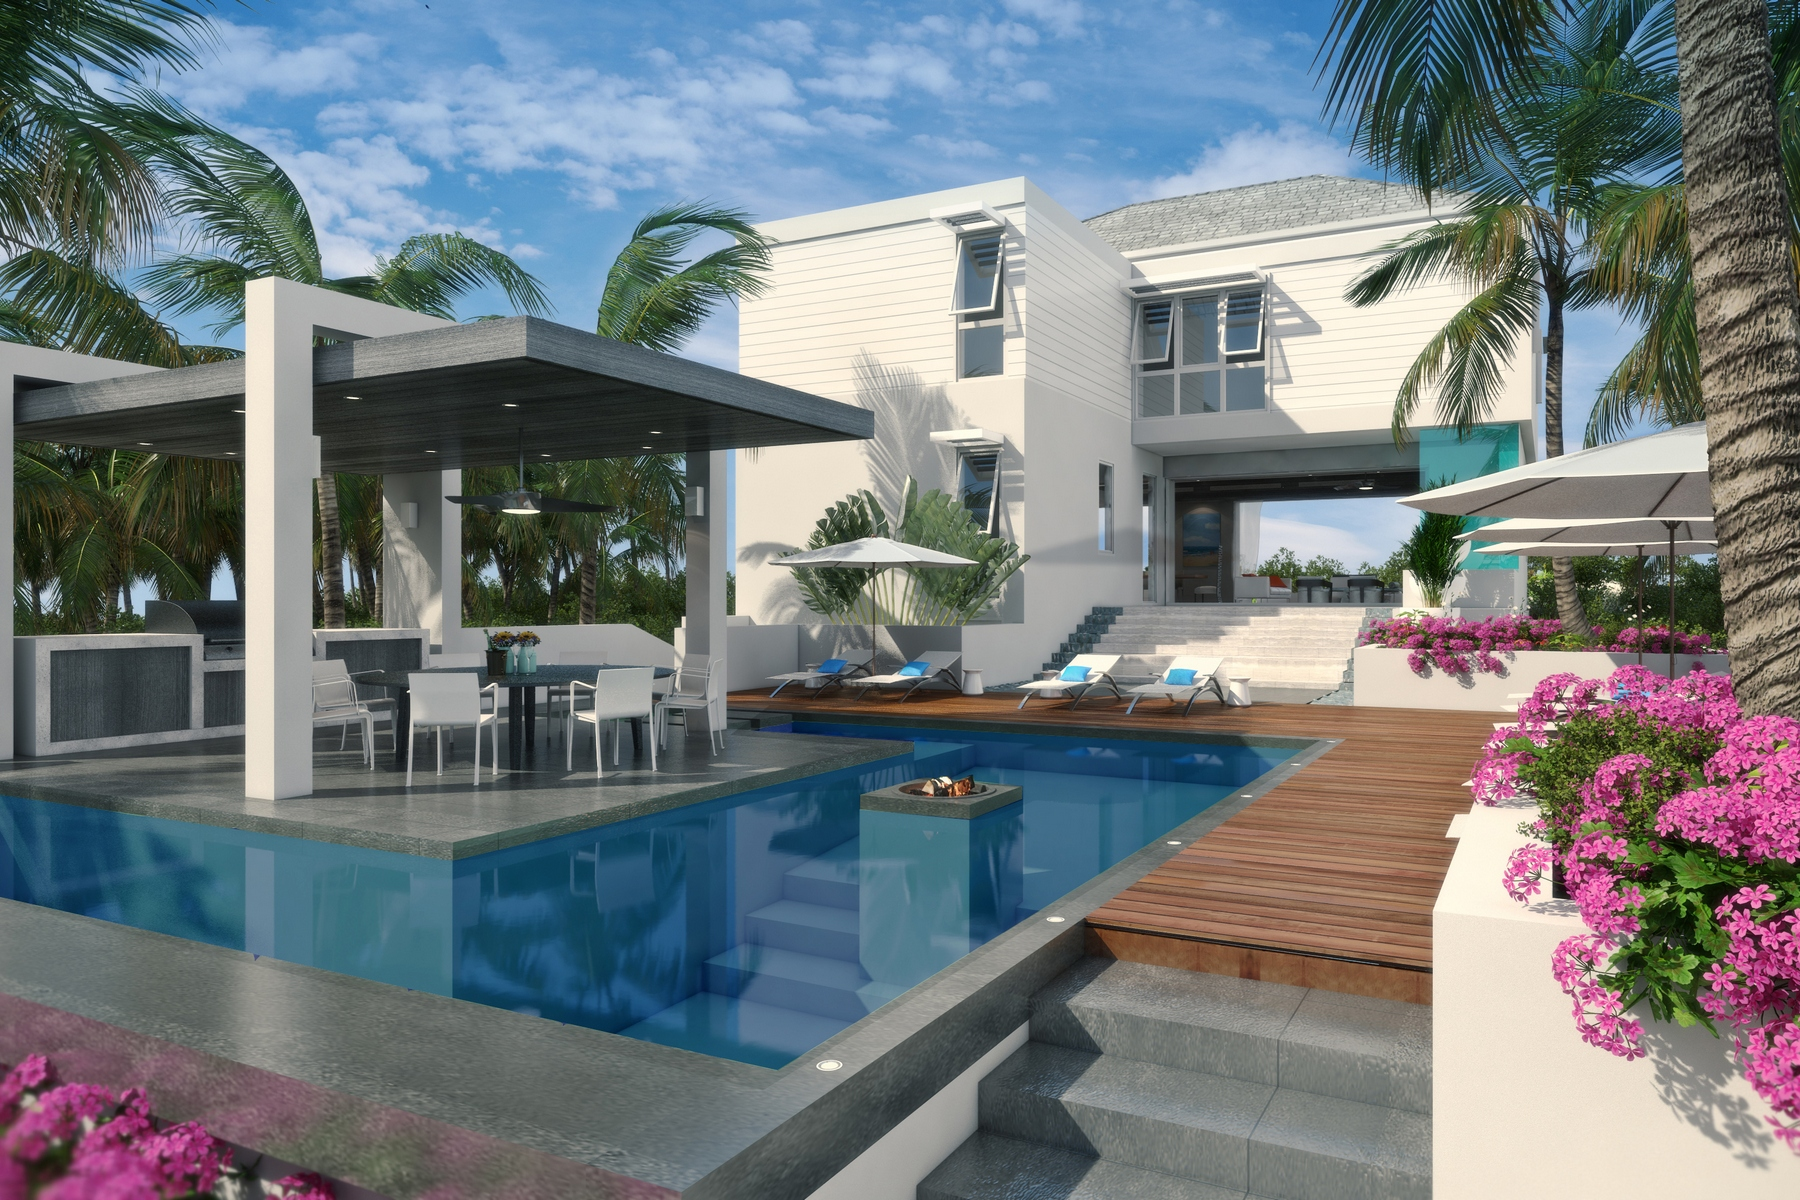 Villa per Vendita alle ore The Dunes Villas ~ Managed by Grace Bay Resorts North Shore Beachfront Turtle Cove, Providenciales TC Turks E Caicos